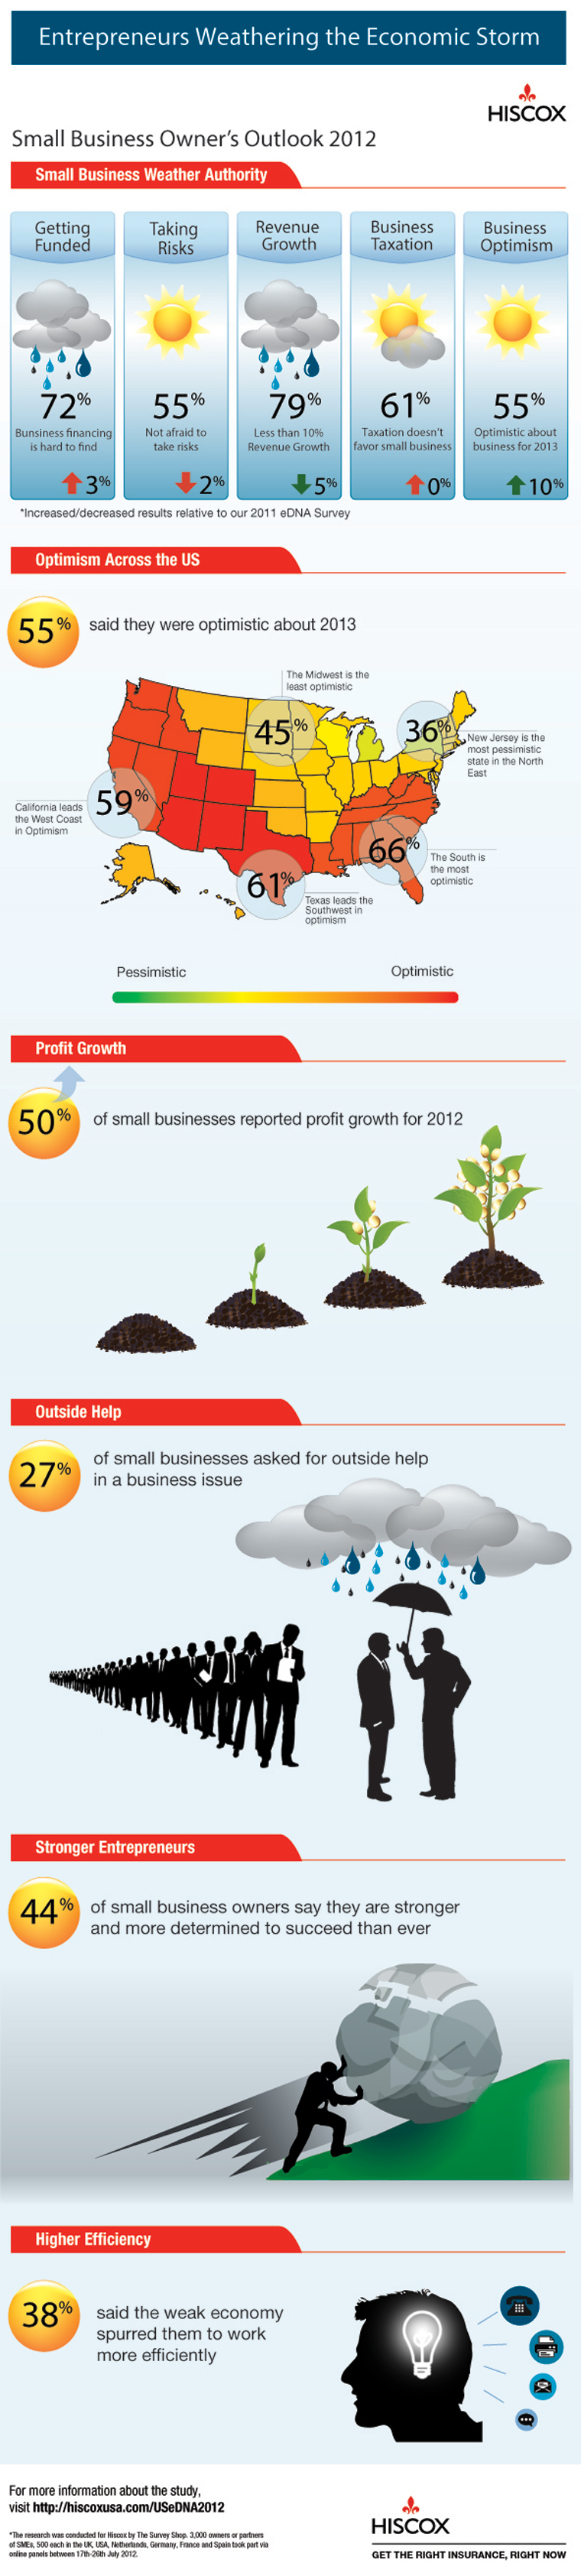 Hiscox small business survey